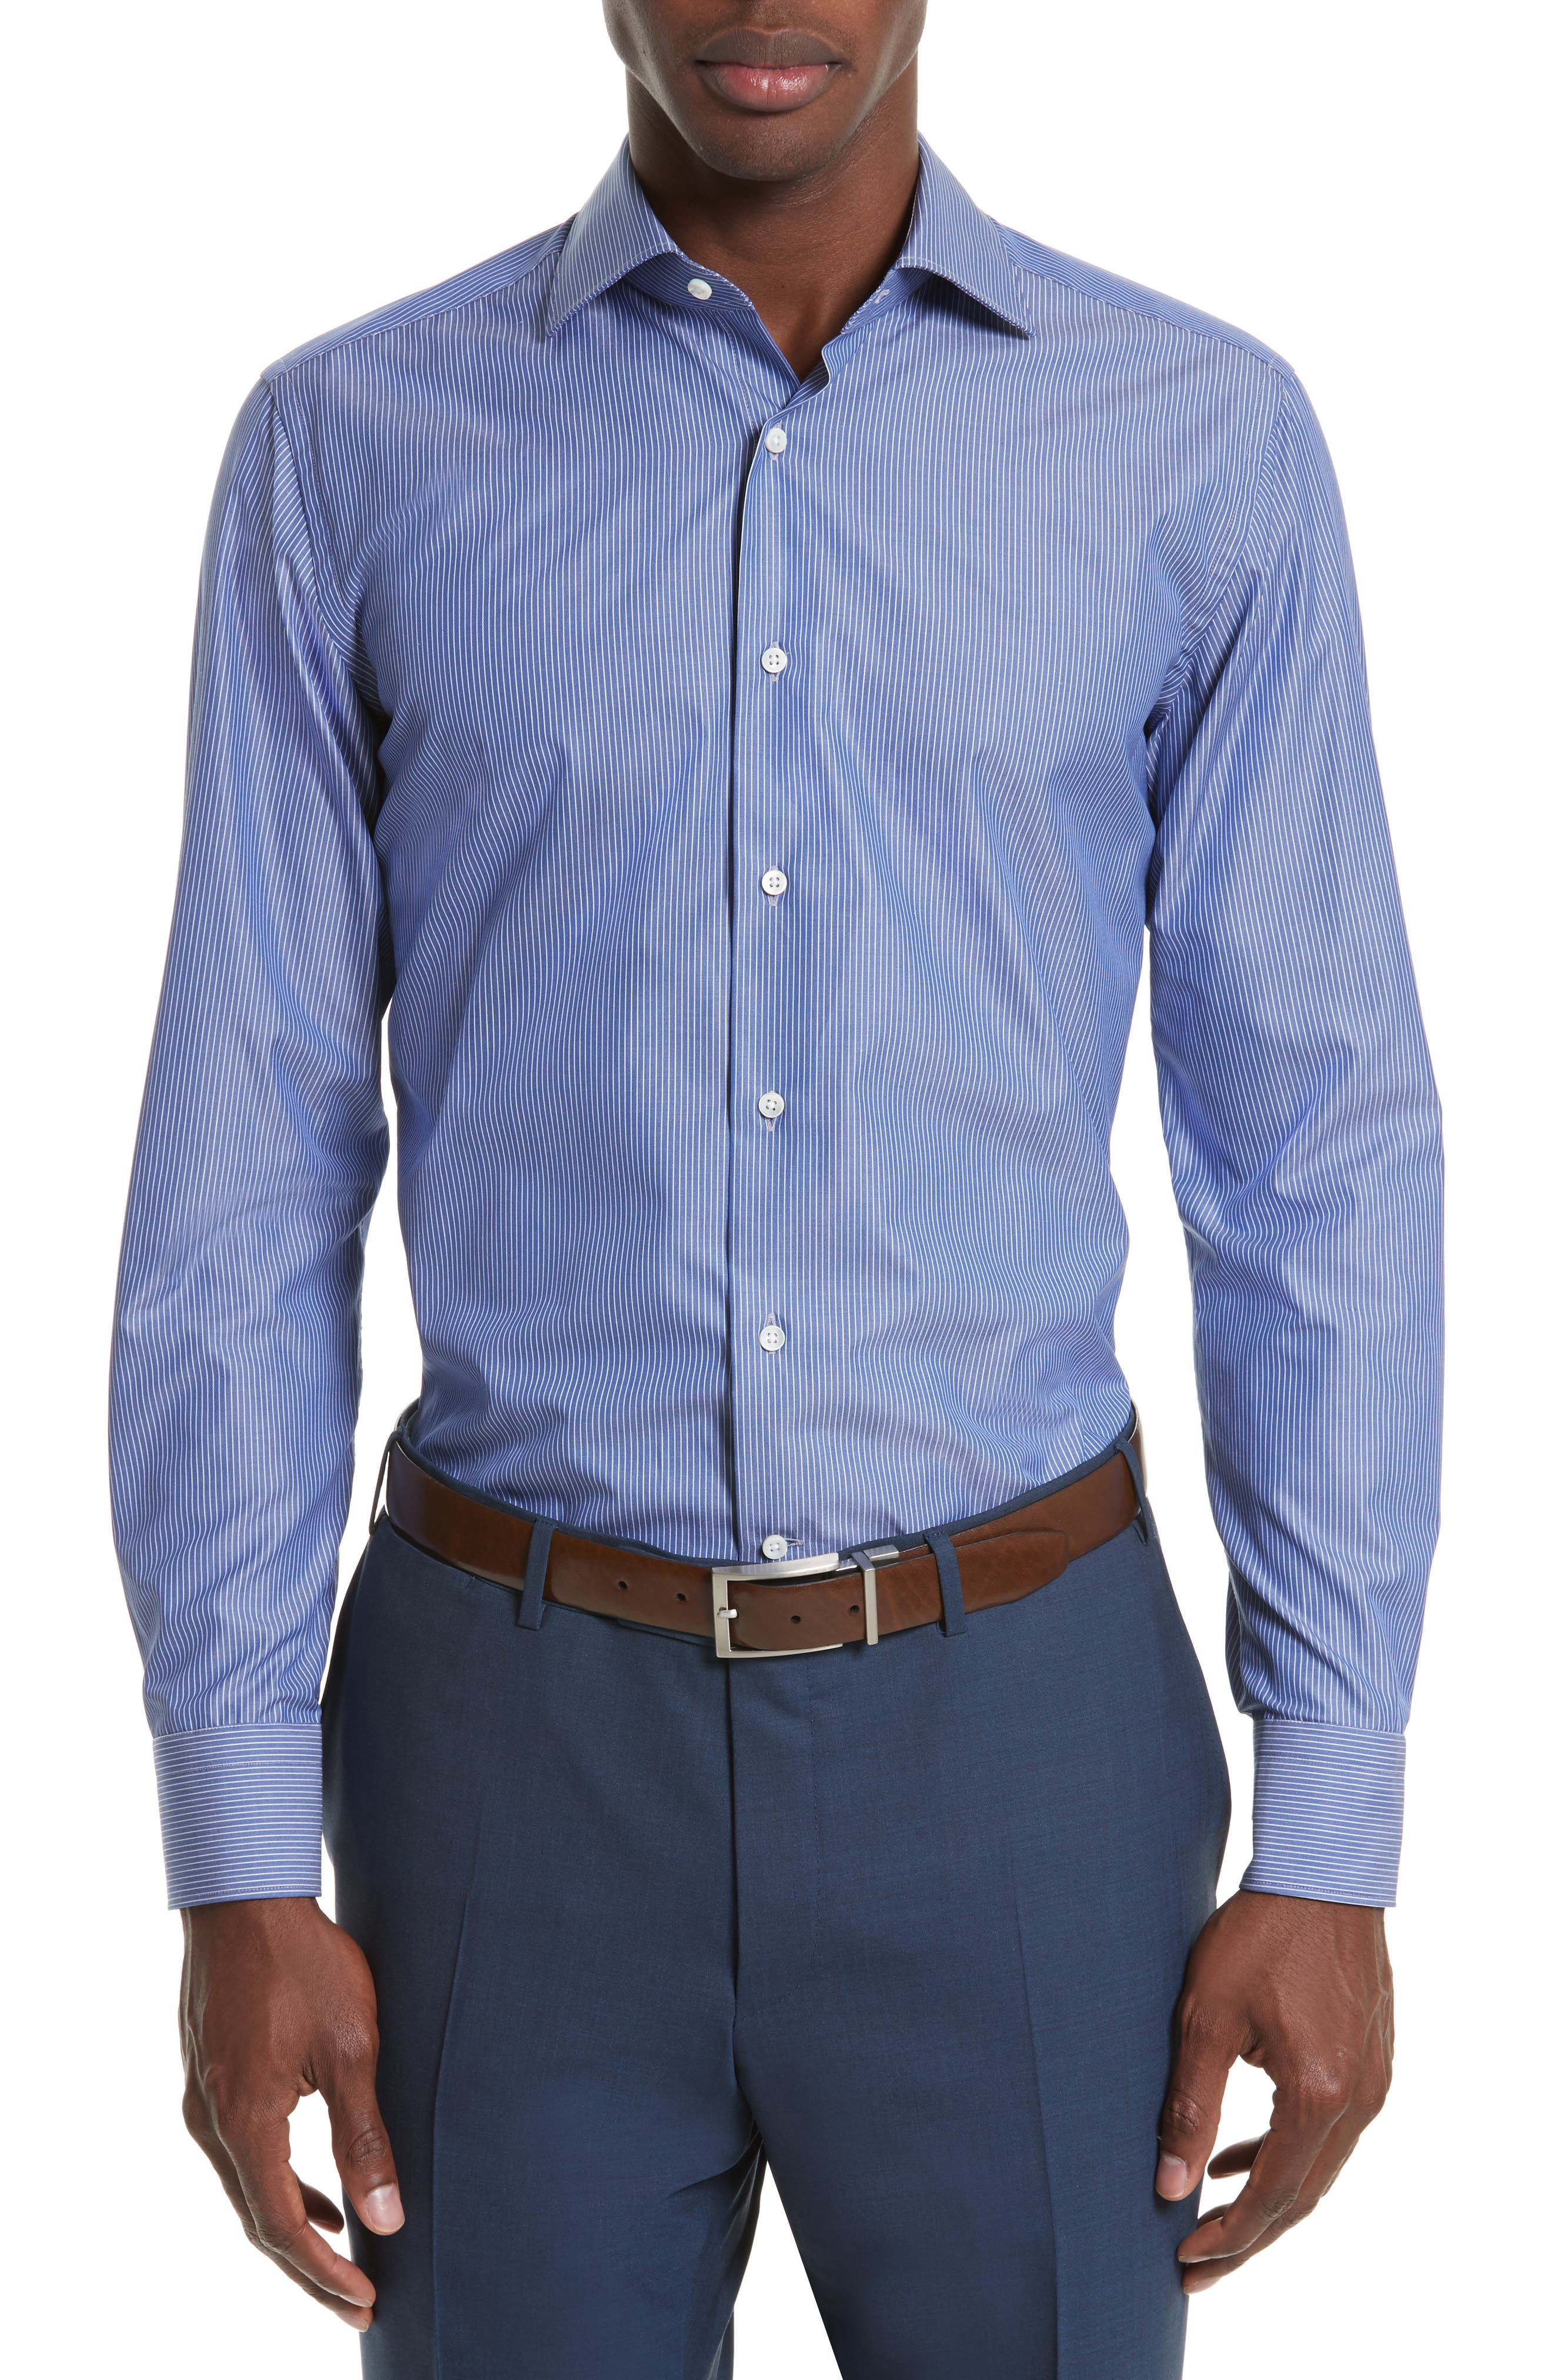 Regular Fit Stripe Dress Shirt,                             Main thumbnail 1, color,                             420